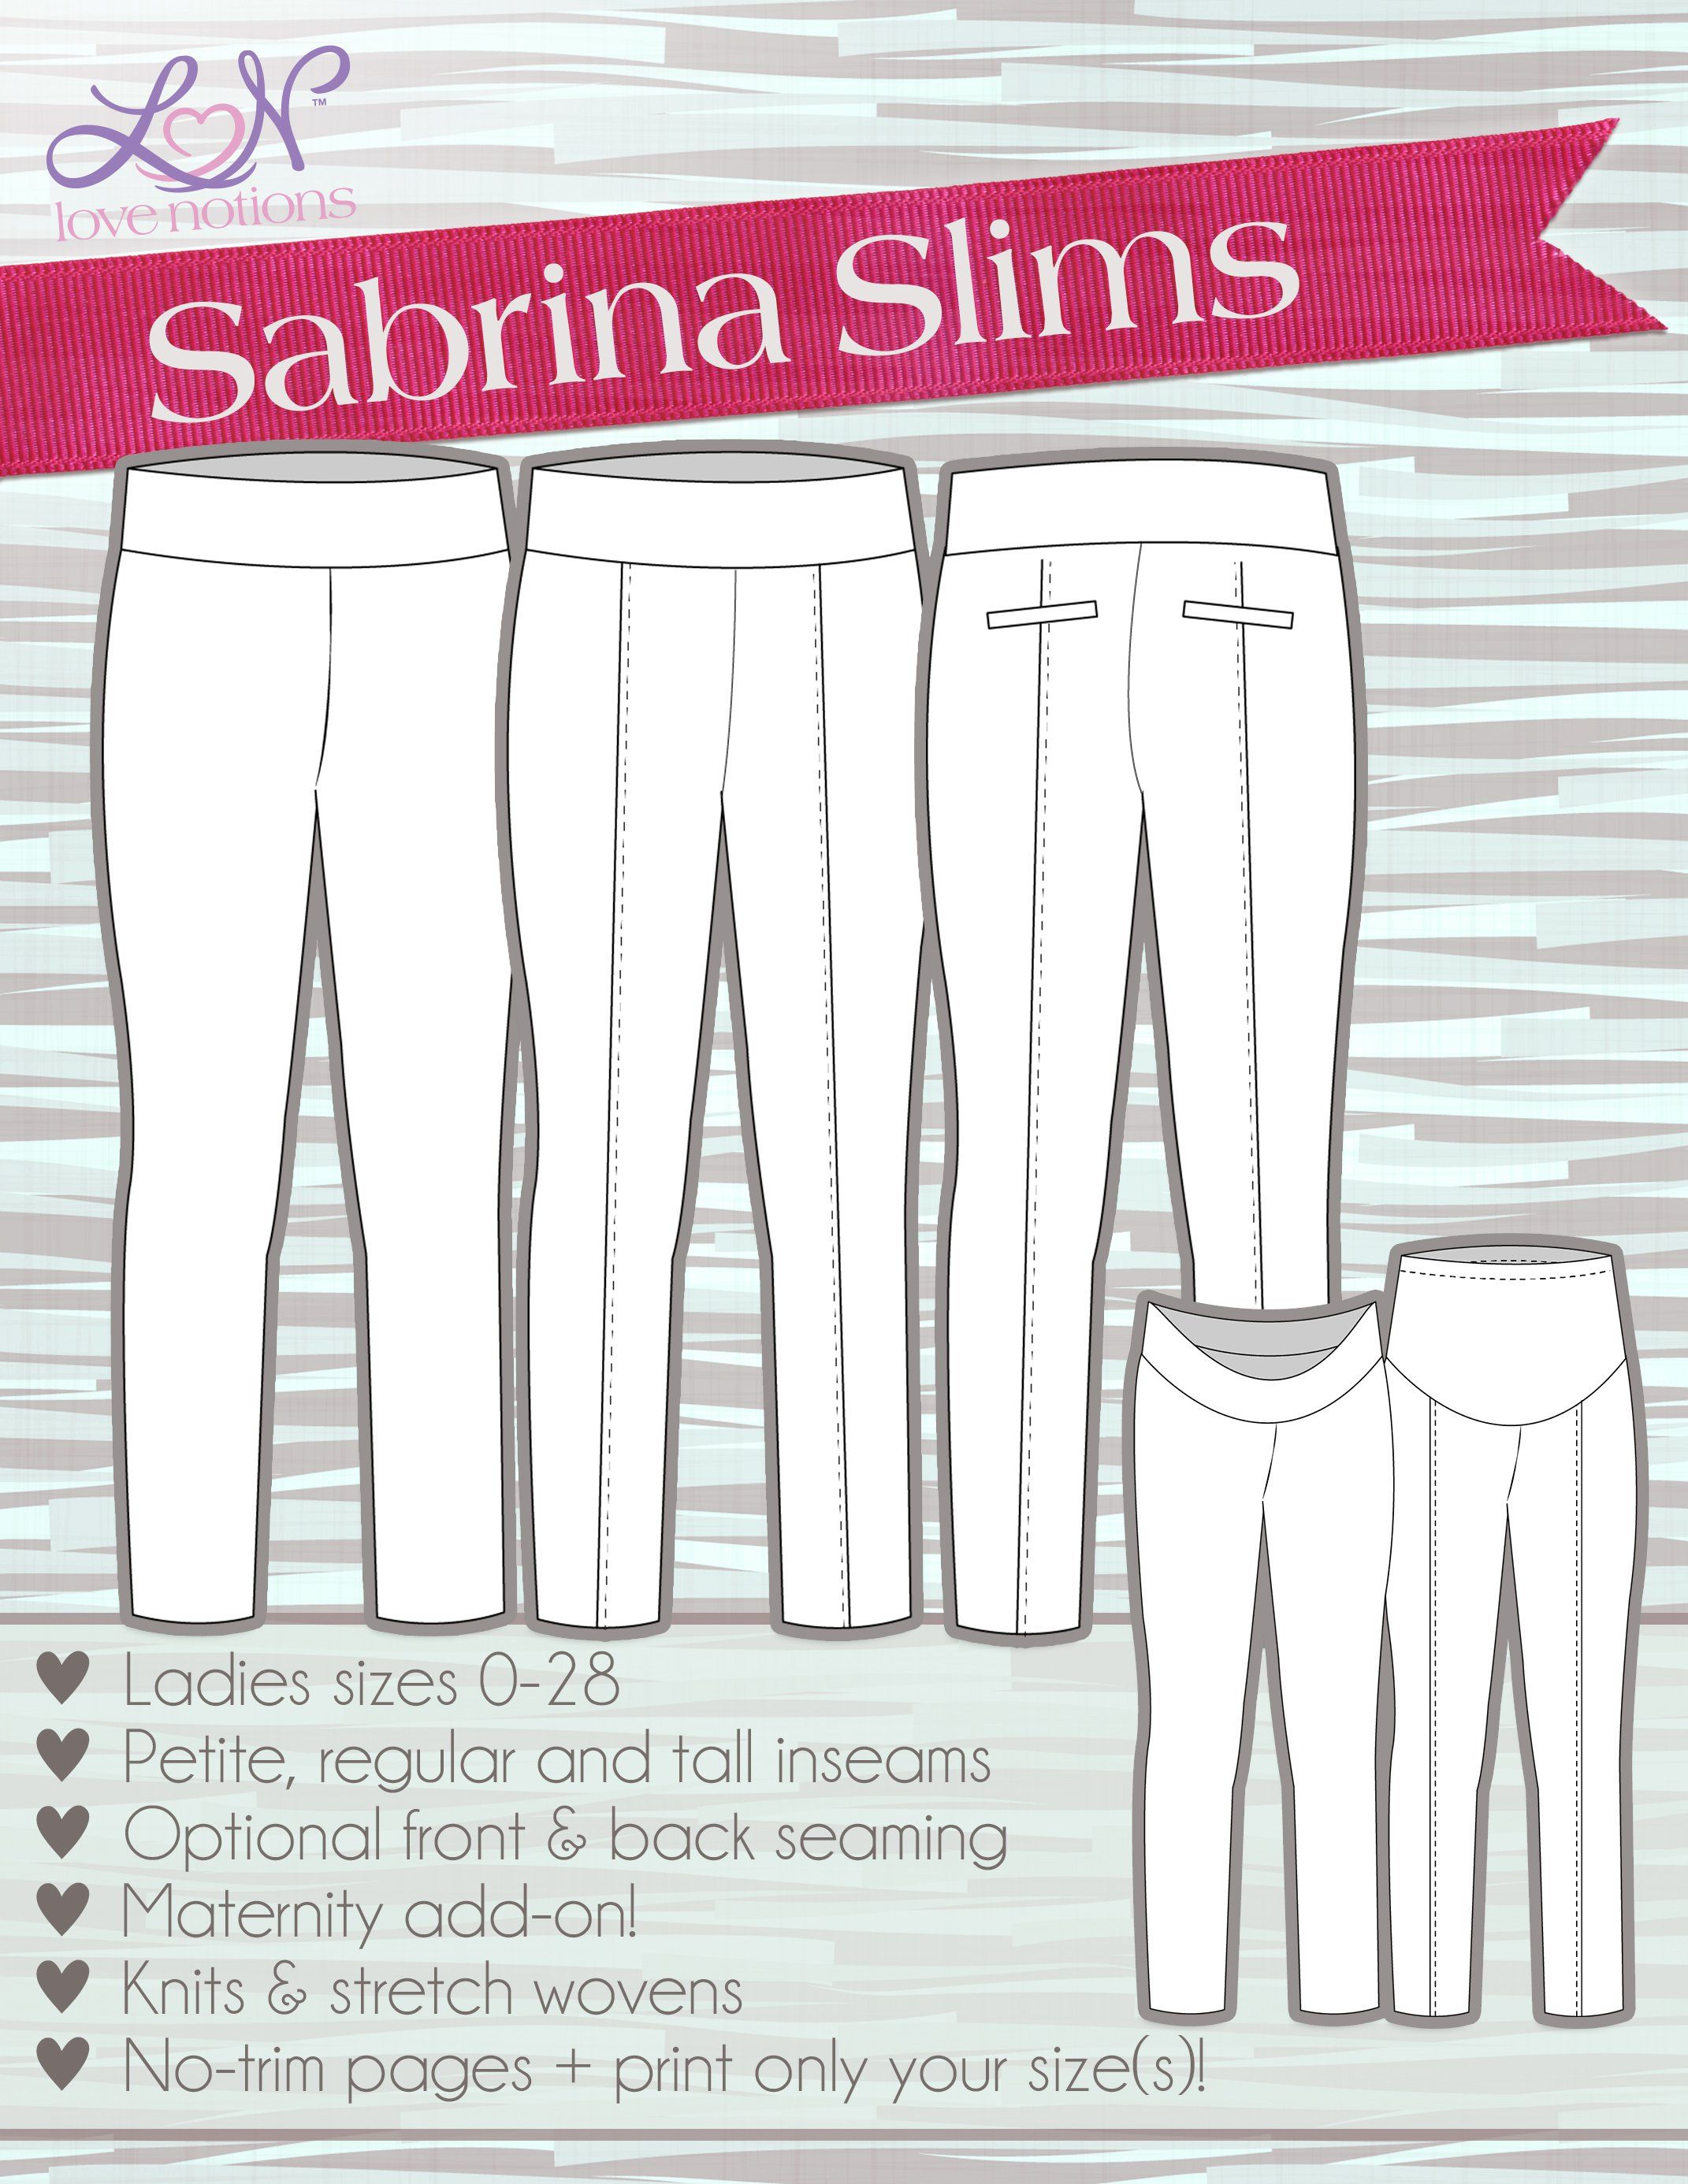 Love Notions Sabrina Slims Downloadable Pattern | Sewing | Pinterest